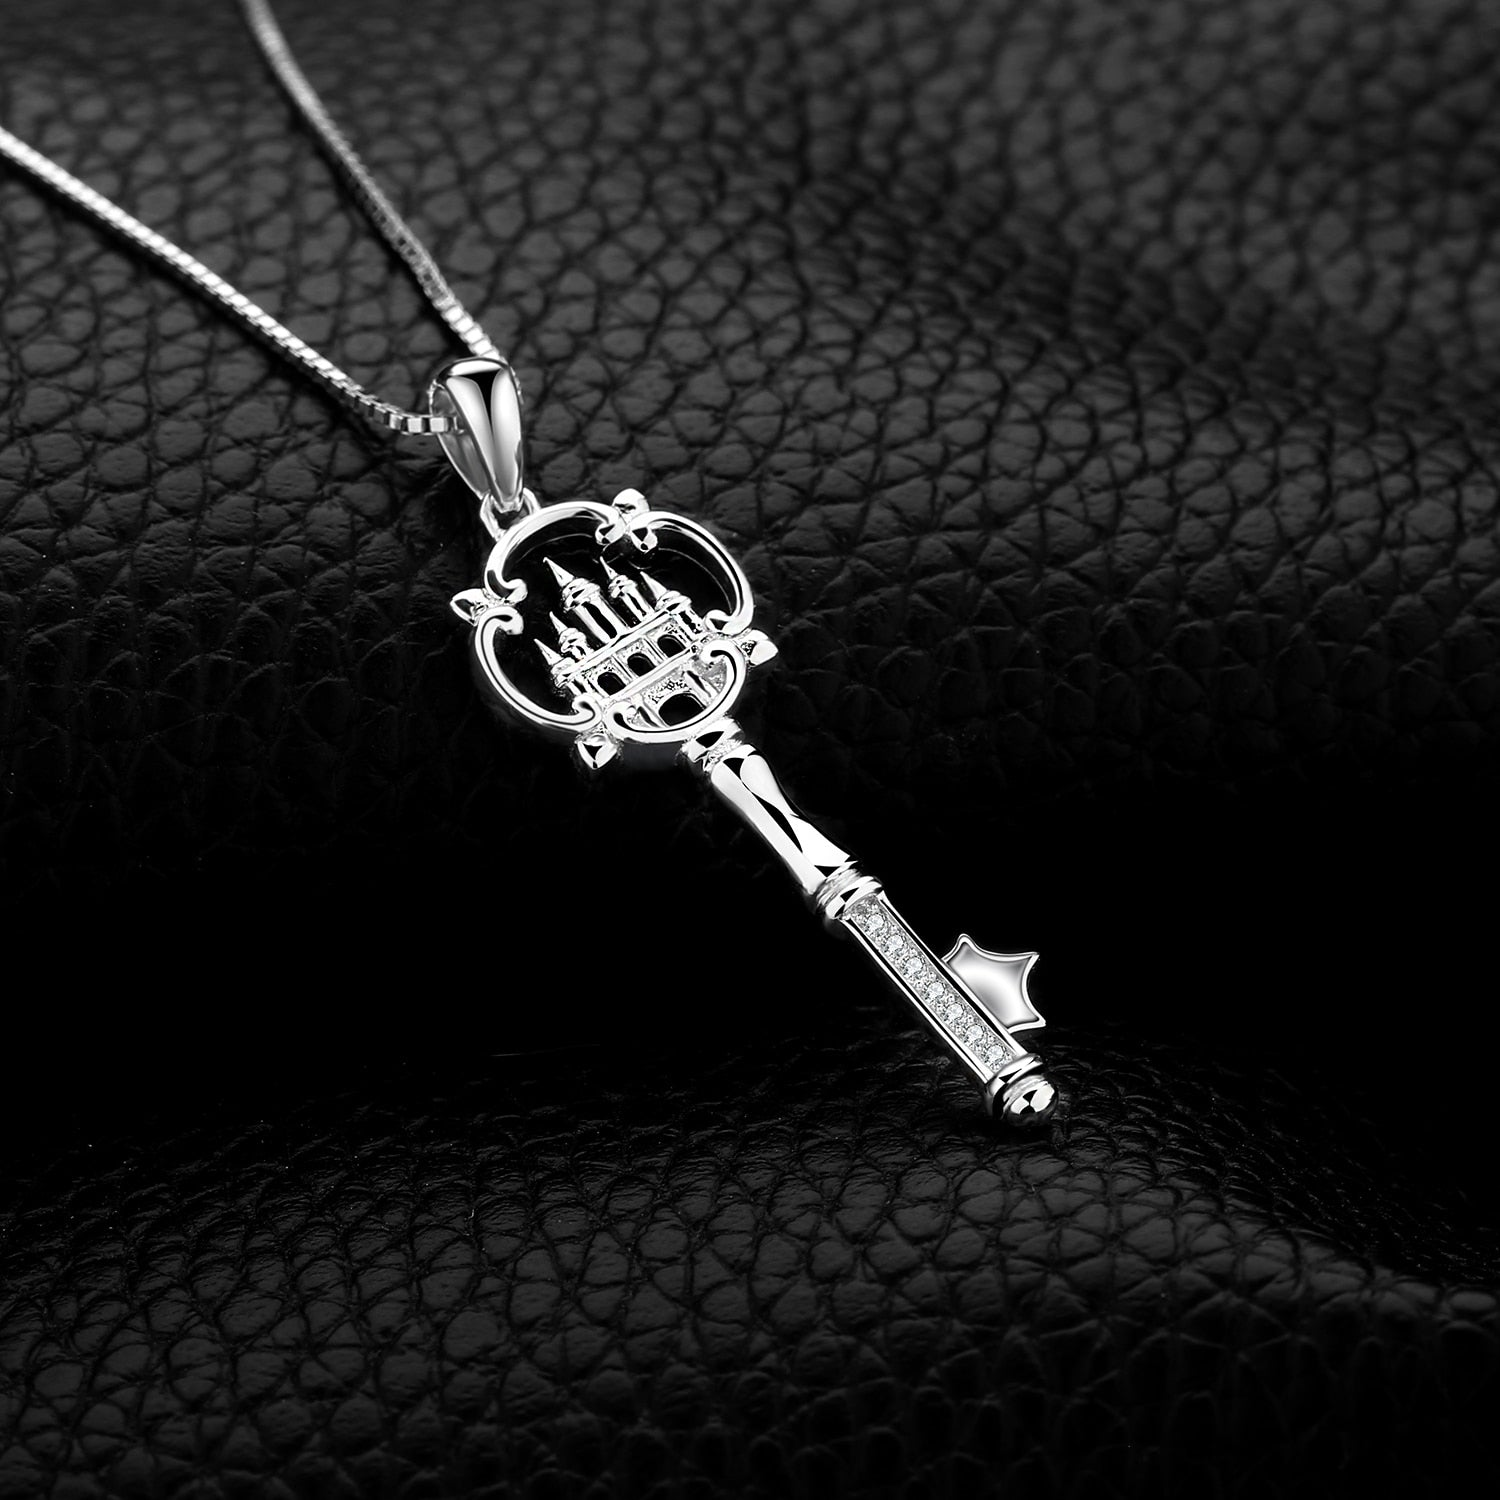 Cubic Zirconia Castle Key Pendant Necklace Without Chain 925 Sterling Silver Pendant Jewelry for Women Fashion - BEAUVAN